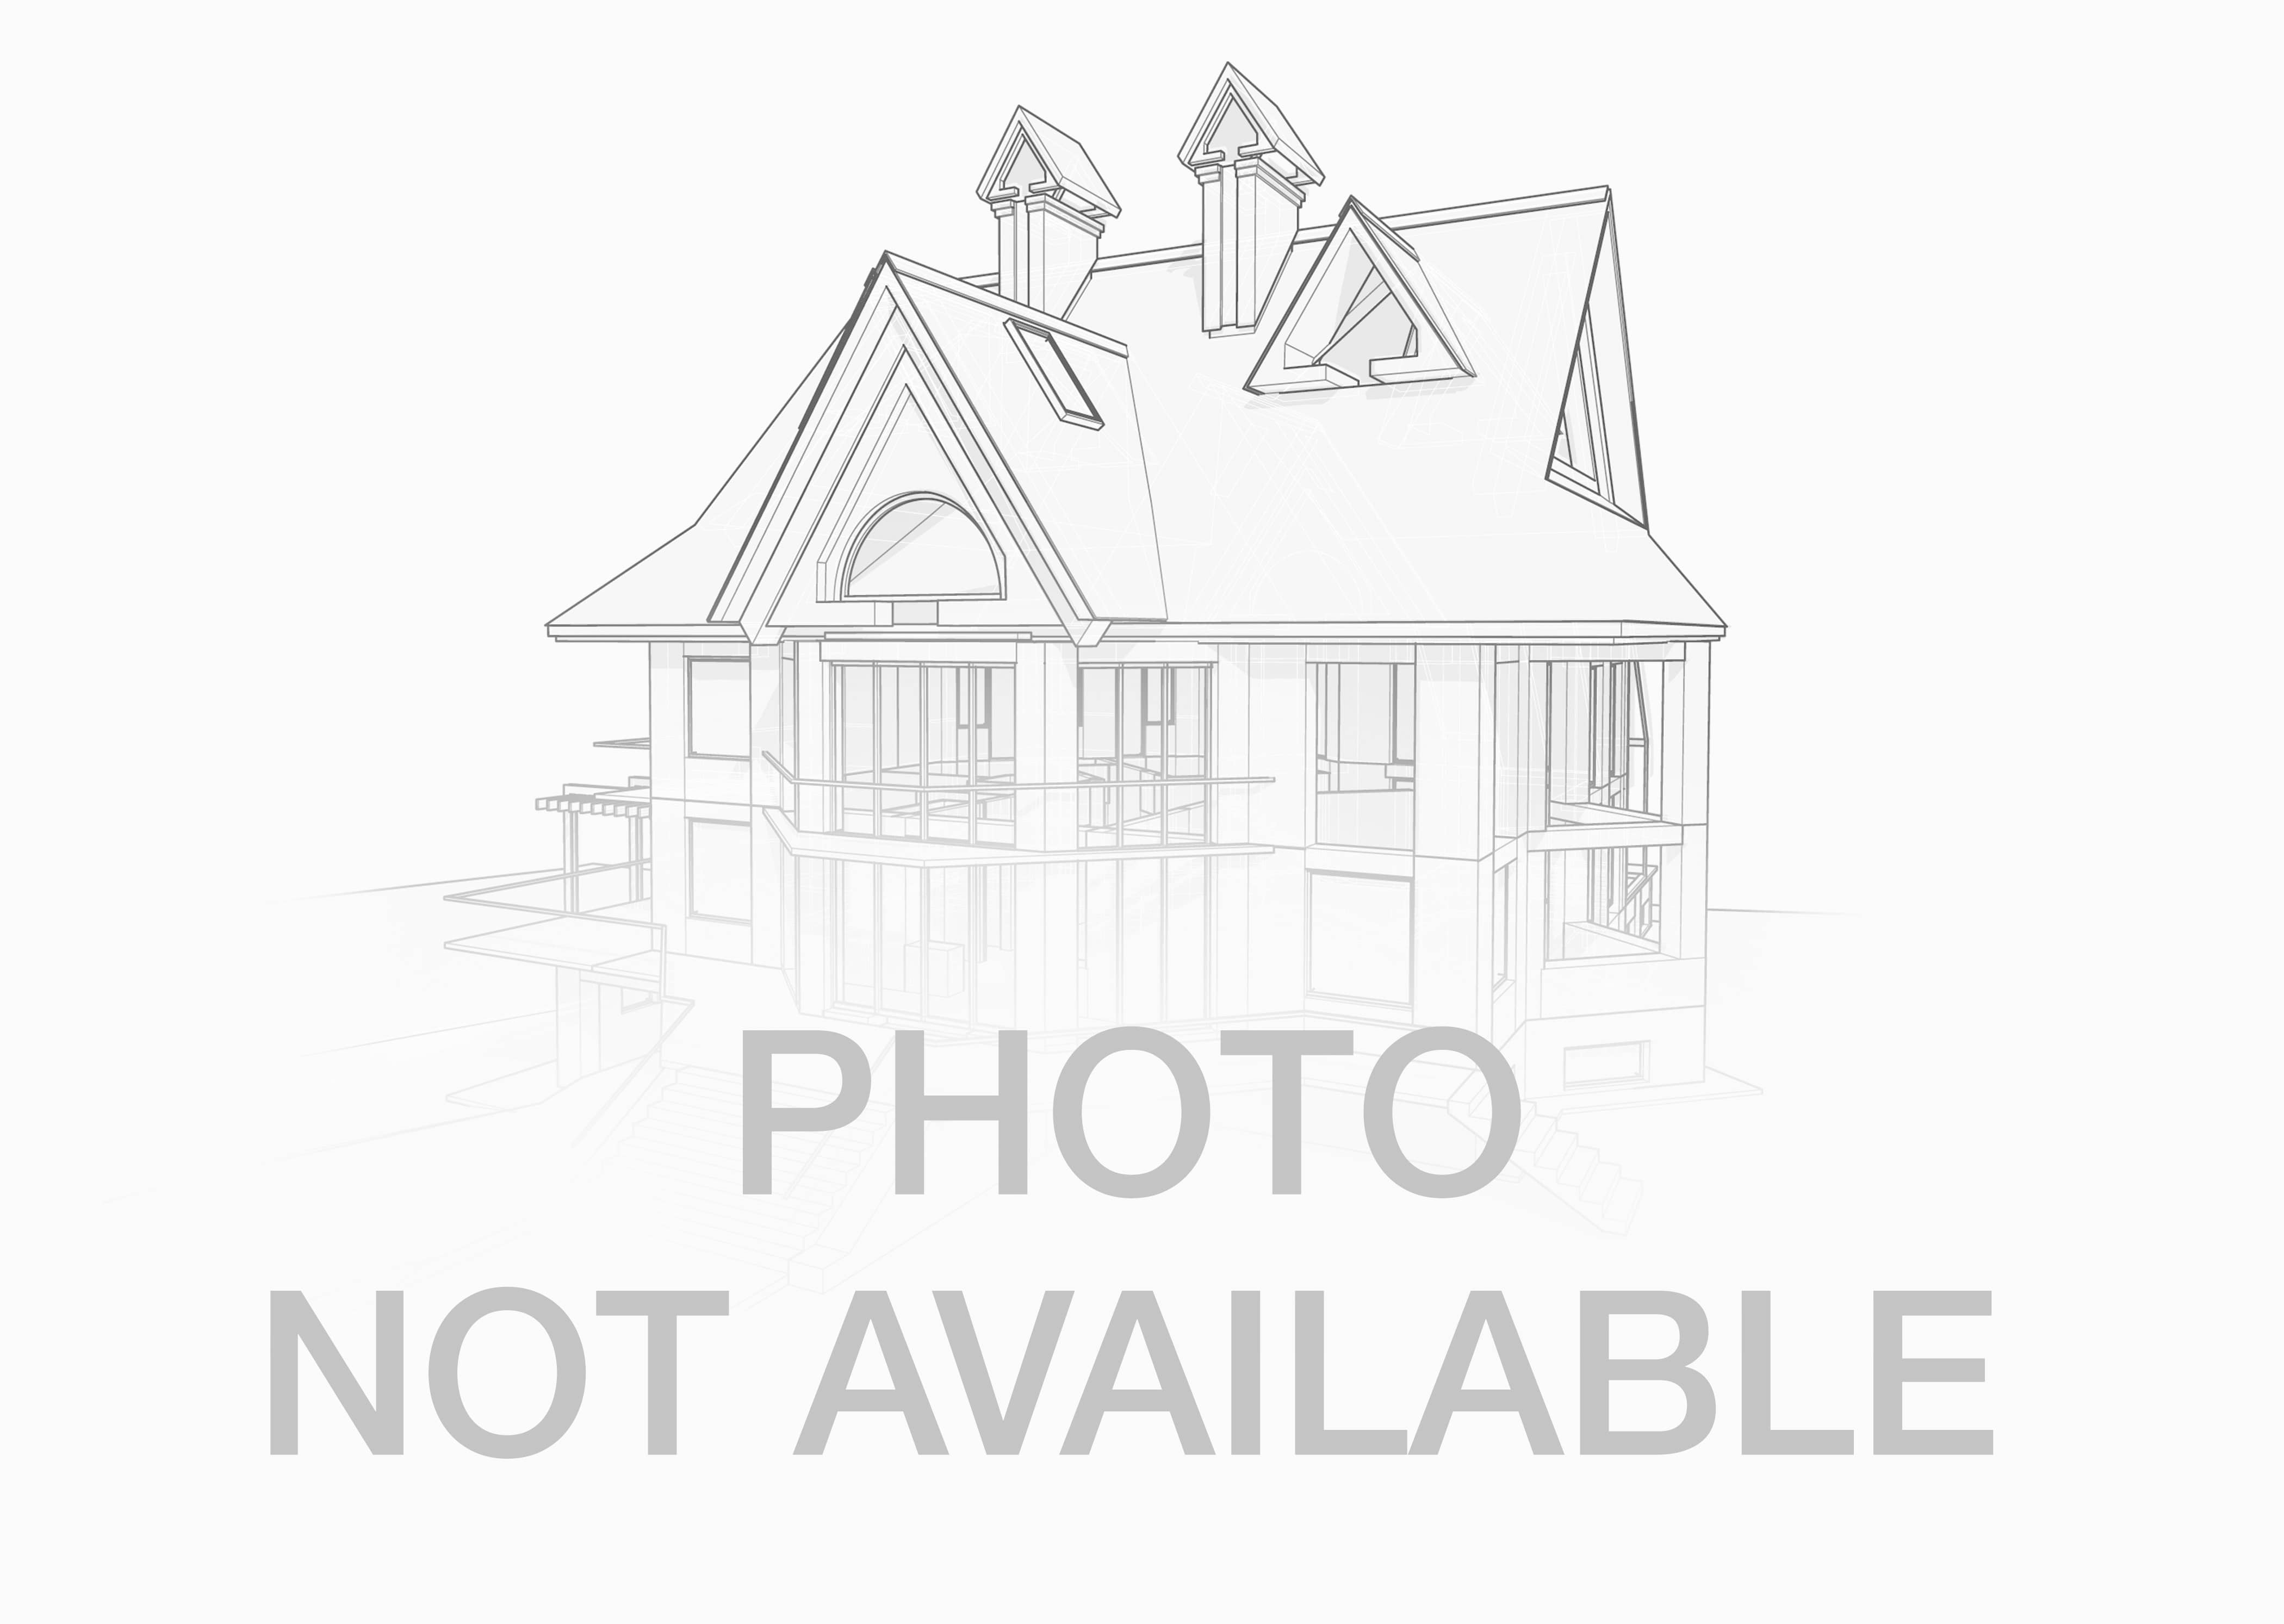 New Homes For Sale In Cda Id